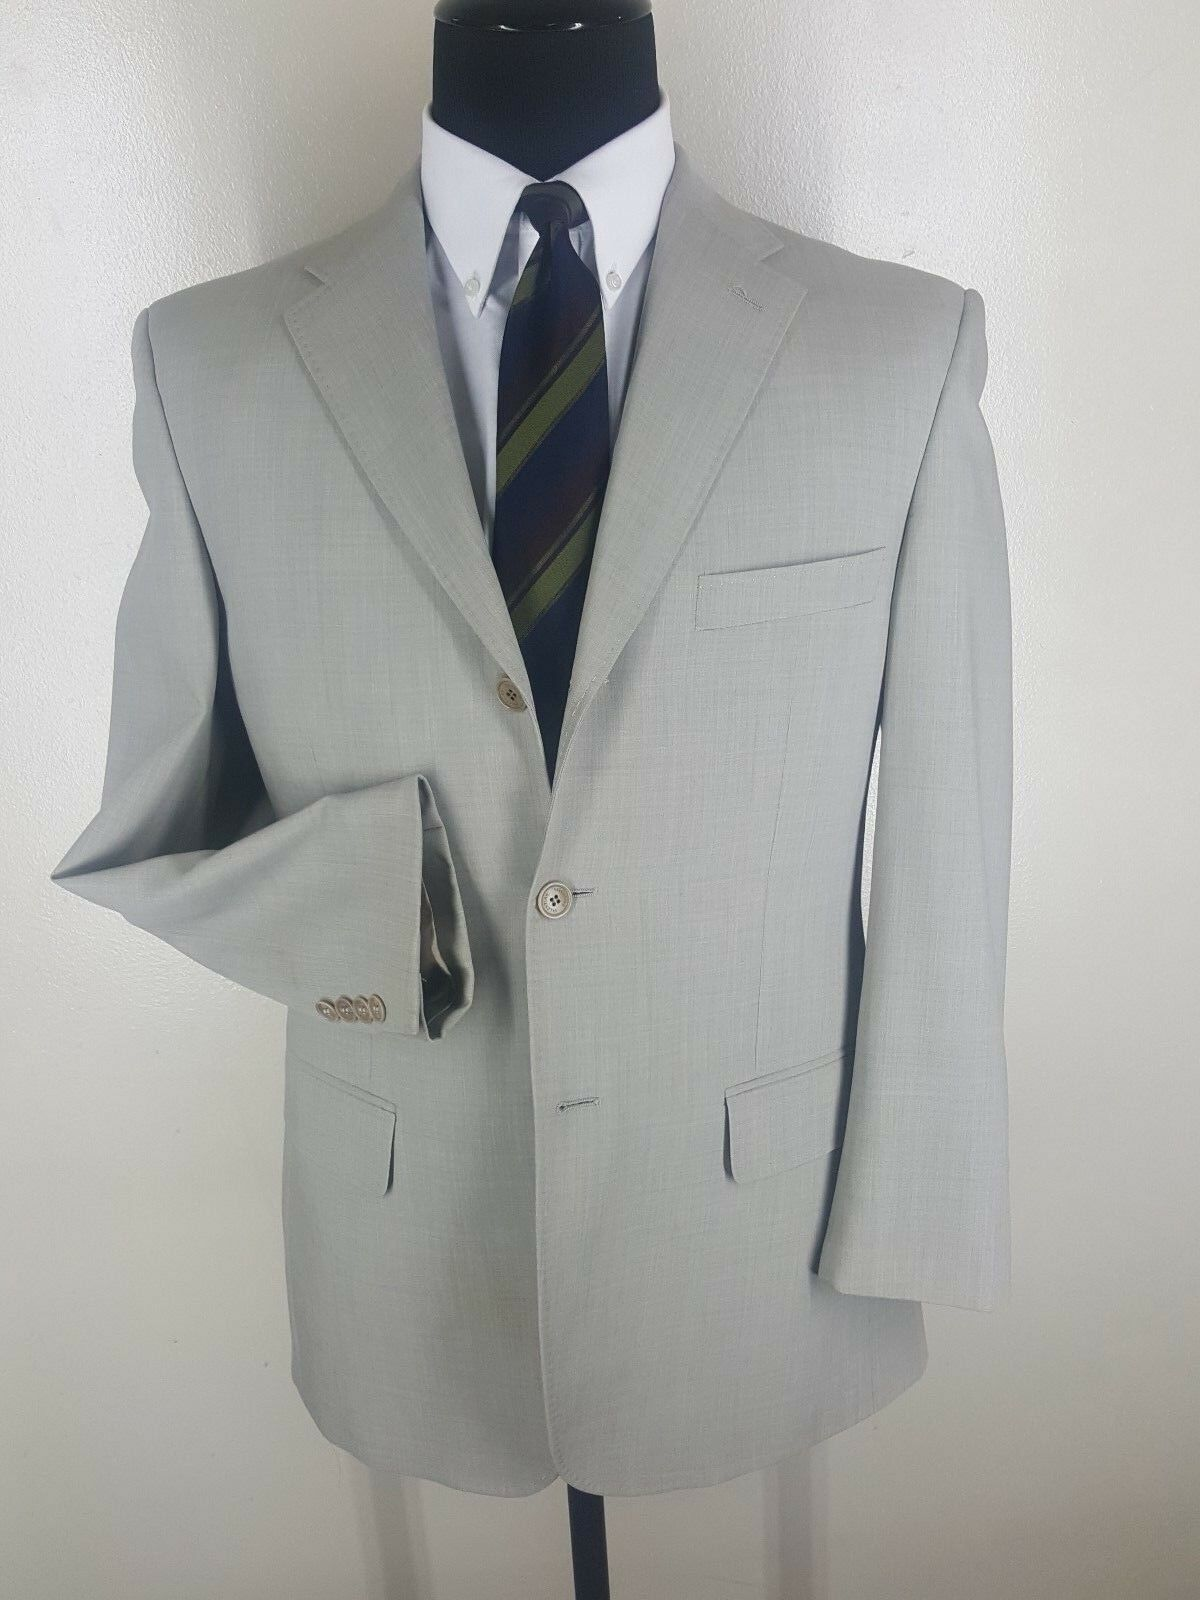 VALENTINO Made In  Sport Coat 3 Btn 2  Vents 4 Season Wool  40R-Fit 40-42 R